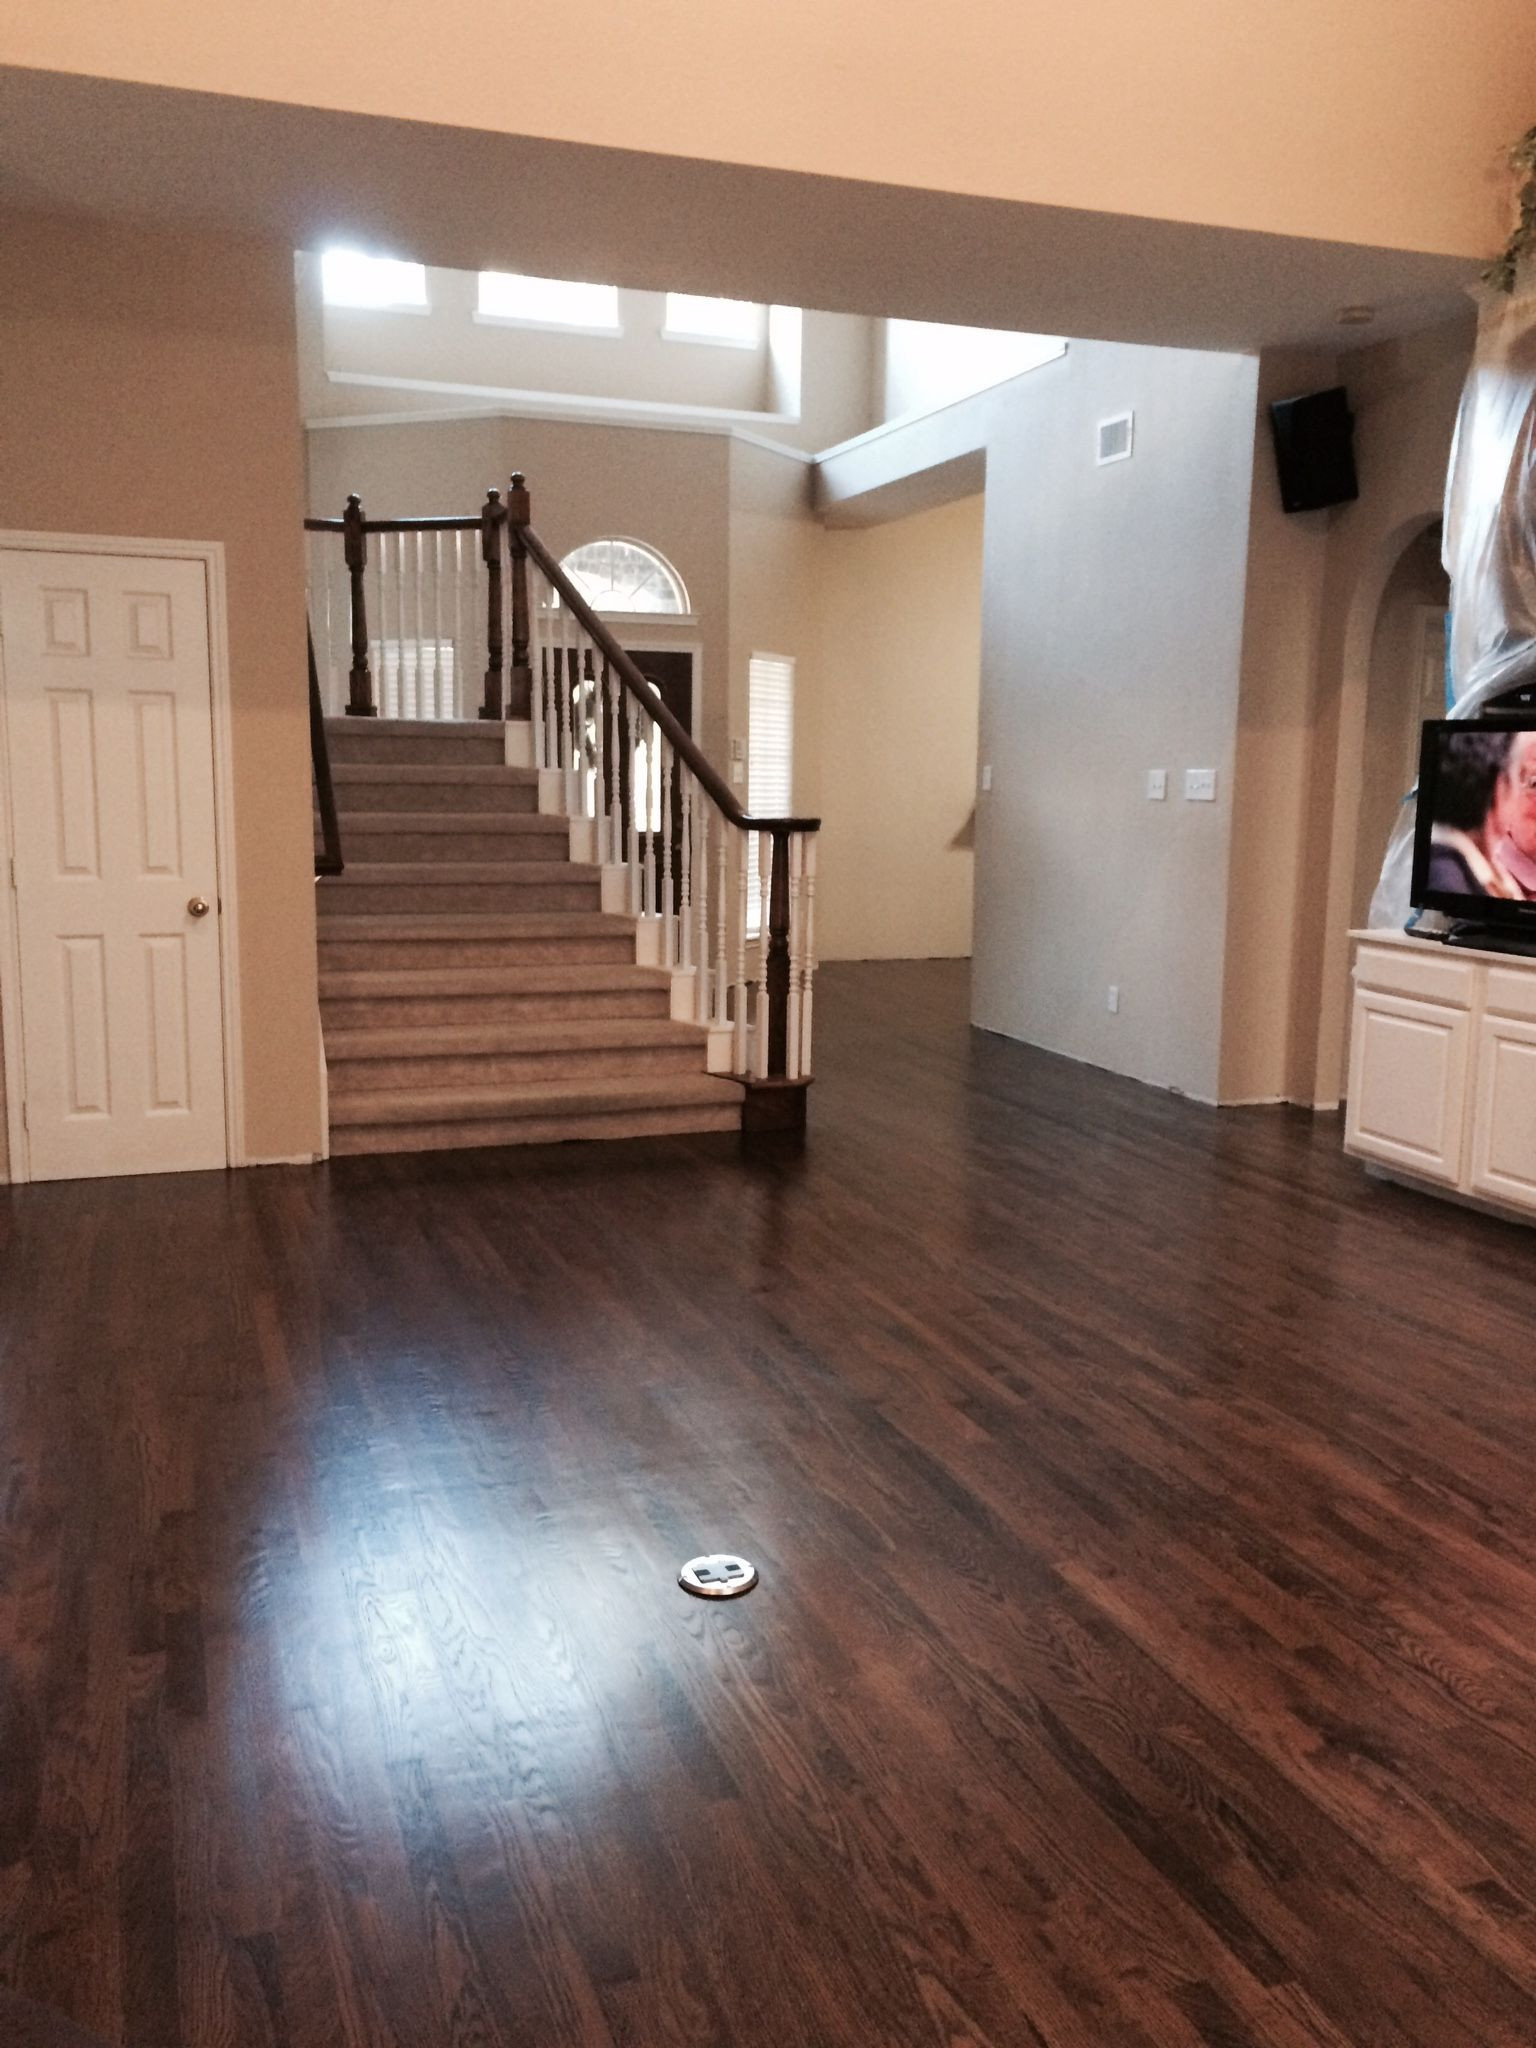 can you stain hardwood floors any color of dark walnut stain on white oak hardwood remodel 1floors in 2018 within dark walnut stain on white oak hardwood walnut hardwood flooring hardwood floor stain colors